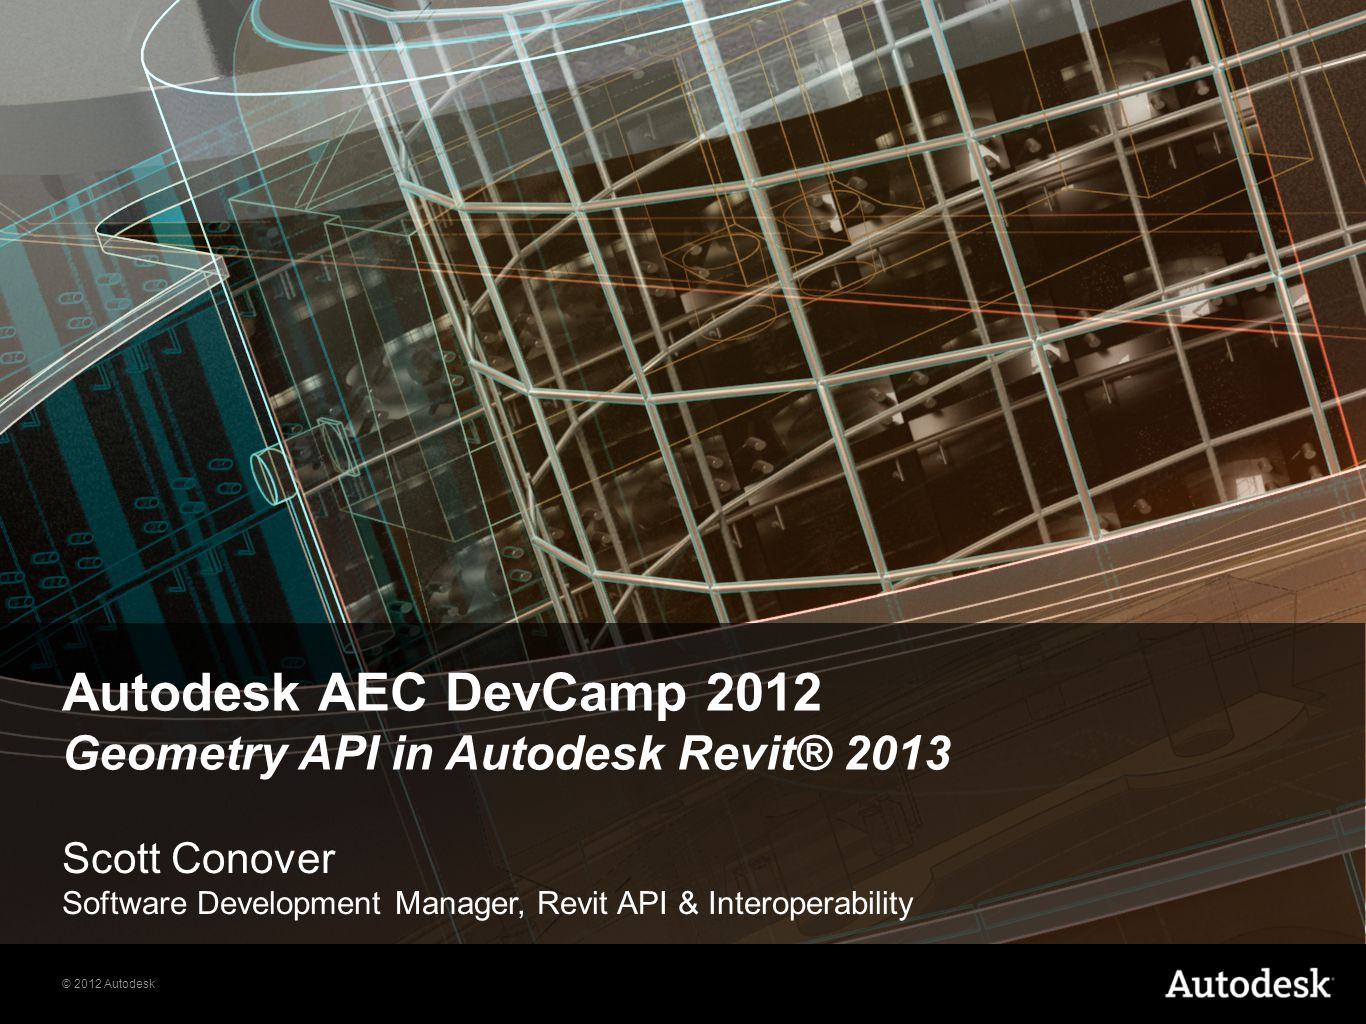 Autodesk AEC DevCamp 2012 Geometry API in Autodesk Revit® 2013